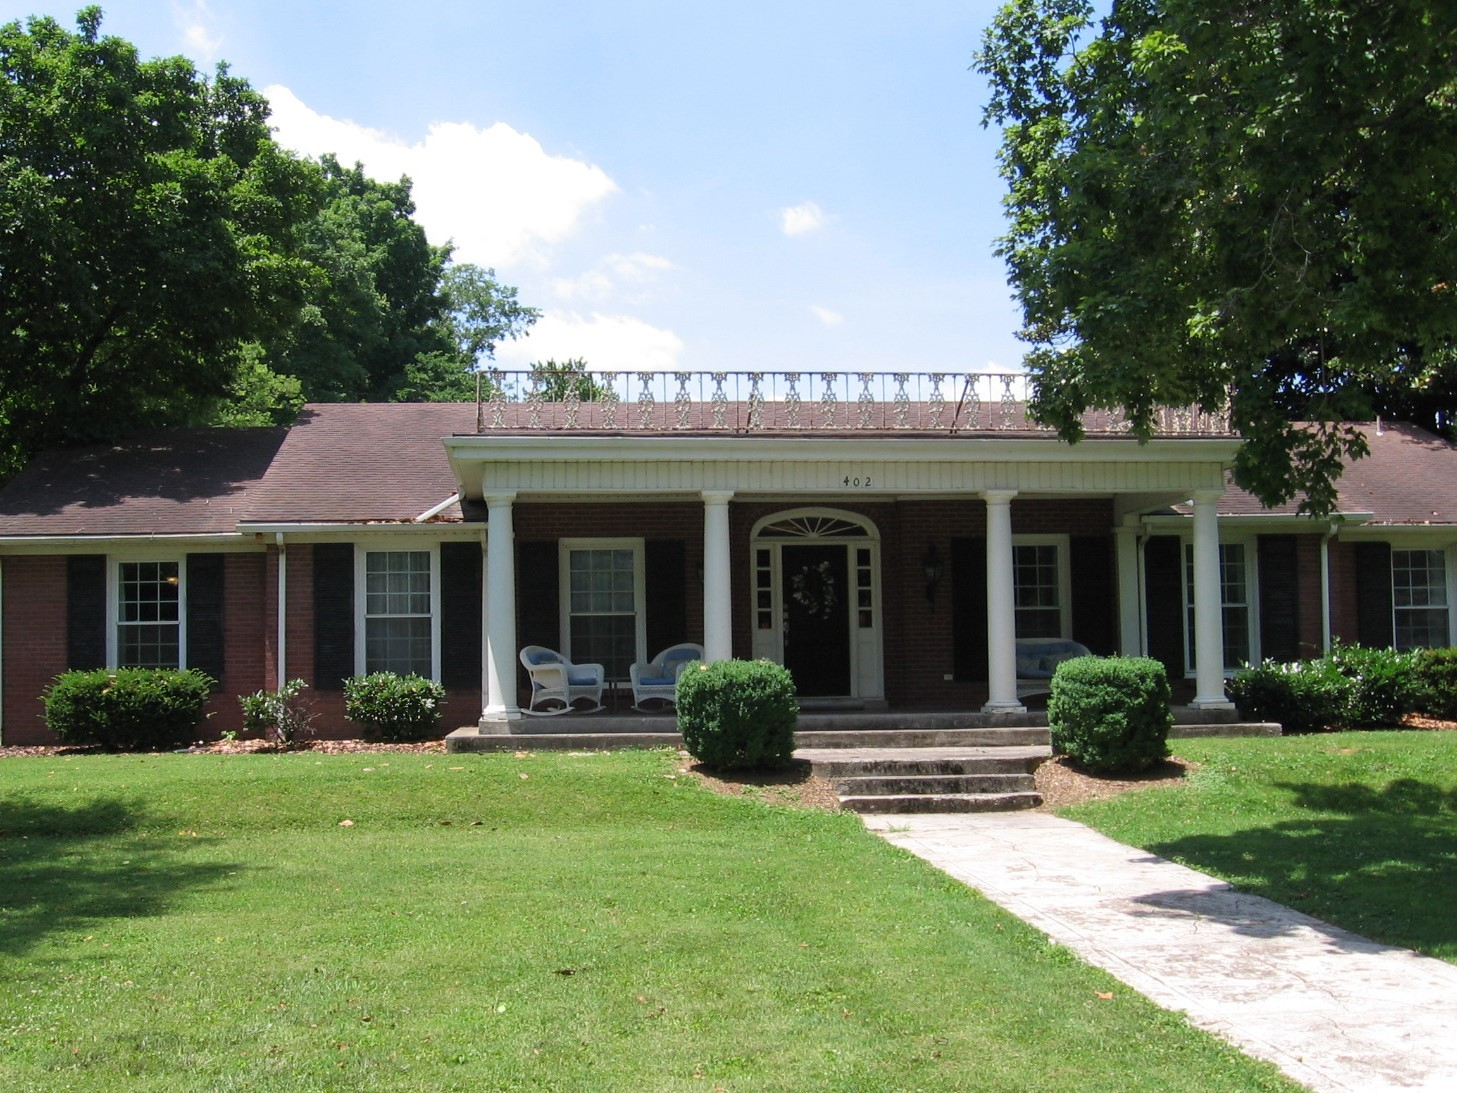 Charming southern home in beautiful Todd County, KY,  This home is updated & move-in ready  Kitchen has been remodeled!  The new owners will have the main house & the guest house.  Main house has 4 large Bedrooms, Living Rm, Den, Din Rm, spacious Kit, Office, & 2 Baths!  Guest house has 920 square feet of living space.   Great for in-laws, guests, or rent it out.